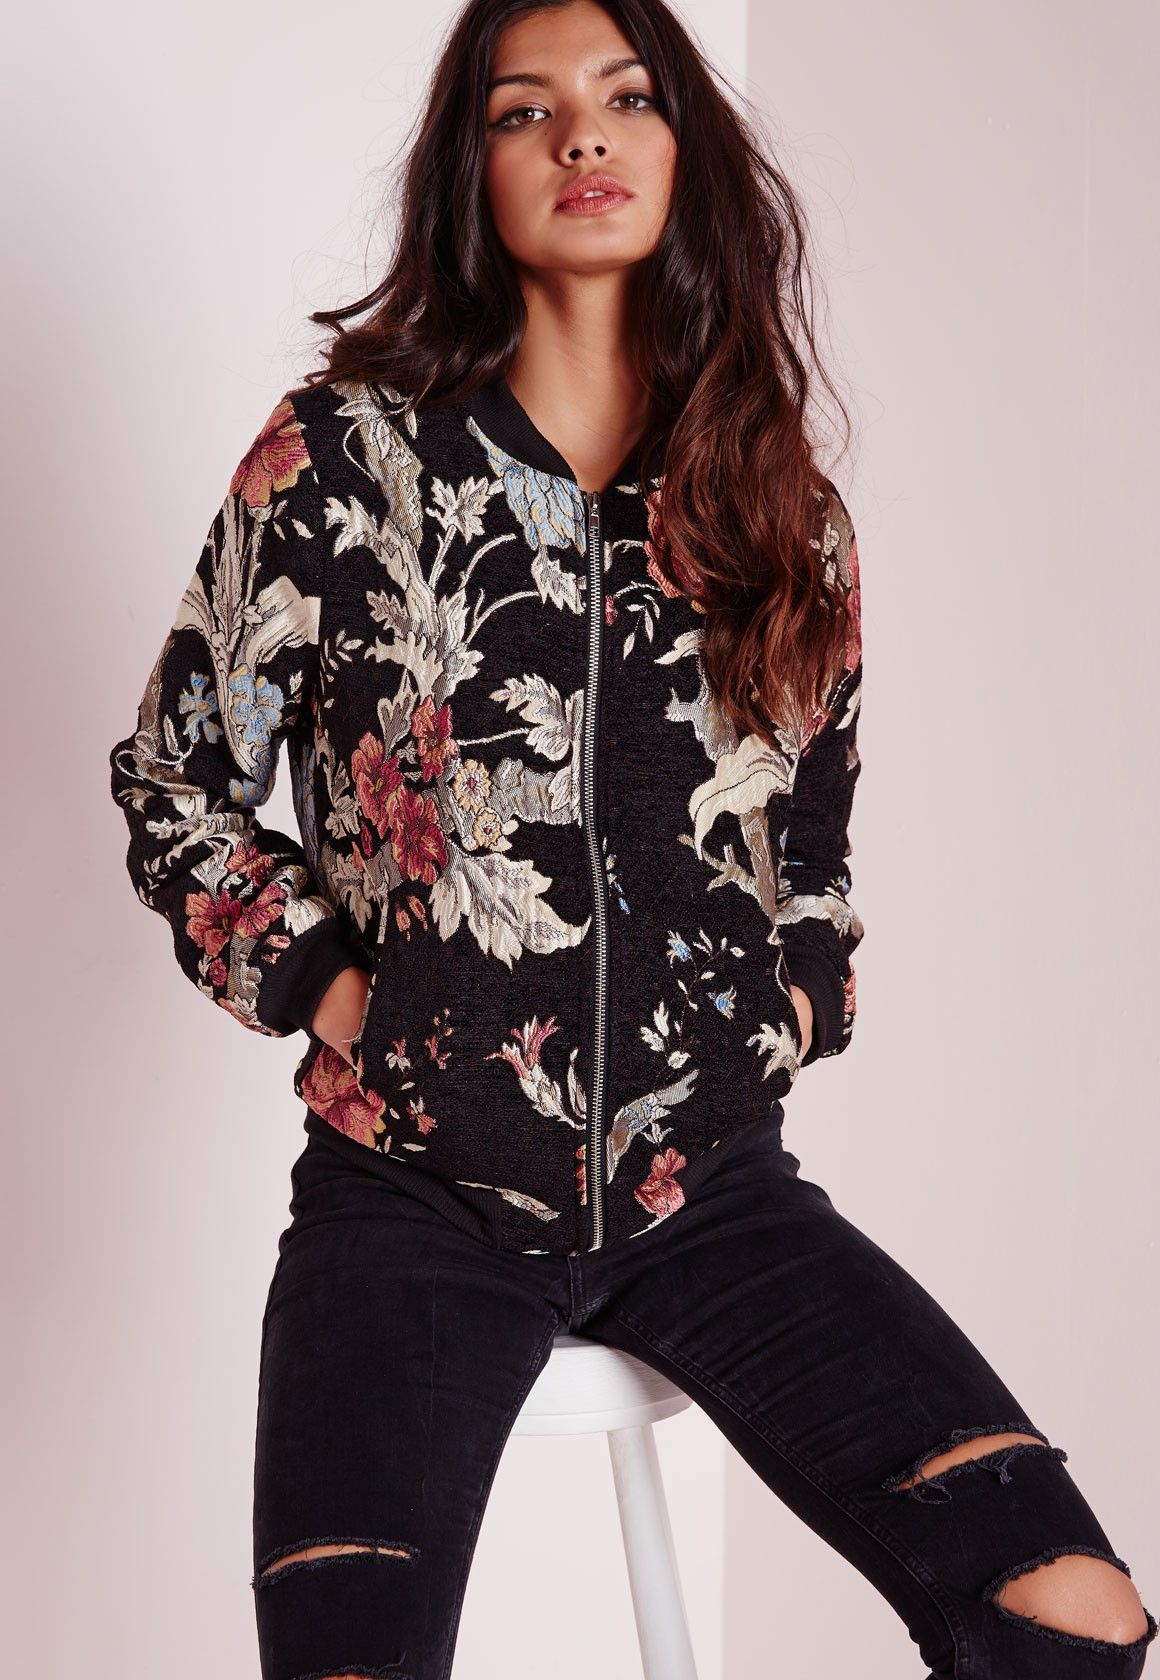 327d99e3b7b Premium Embroidered Floral Bomber Jacket Black - Coats and Jackets - Bomber  Jackets - Missguided